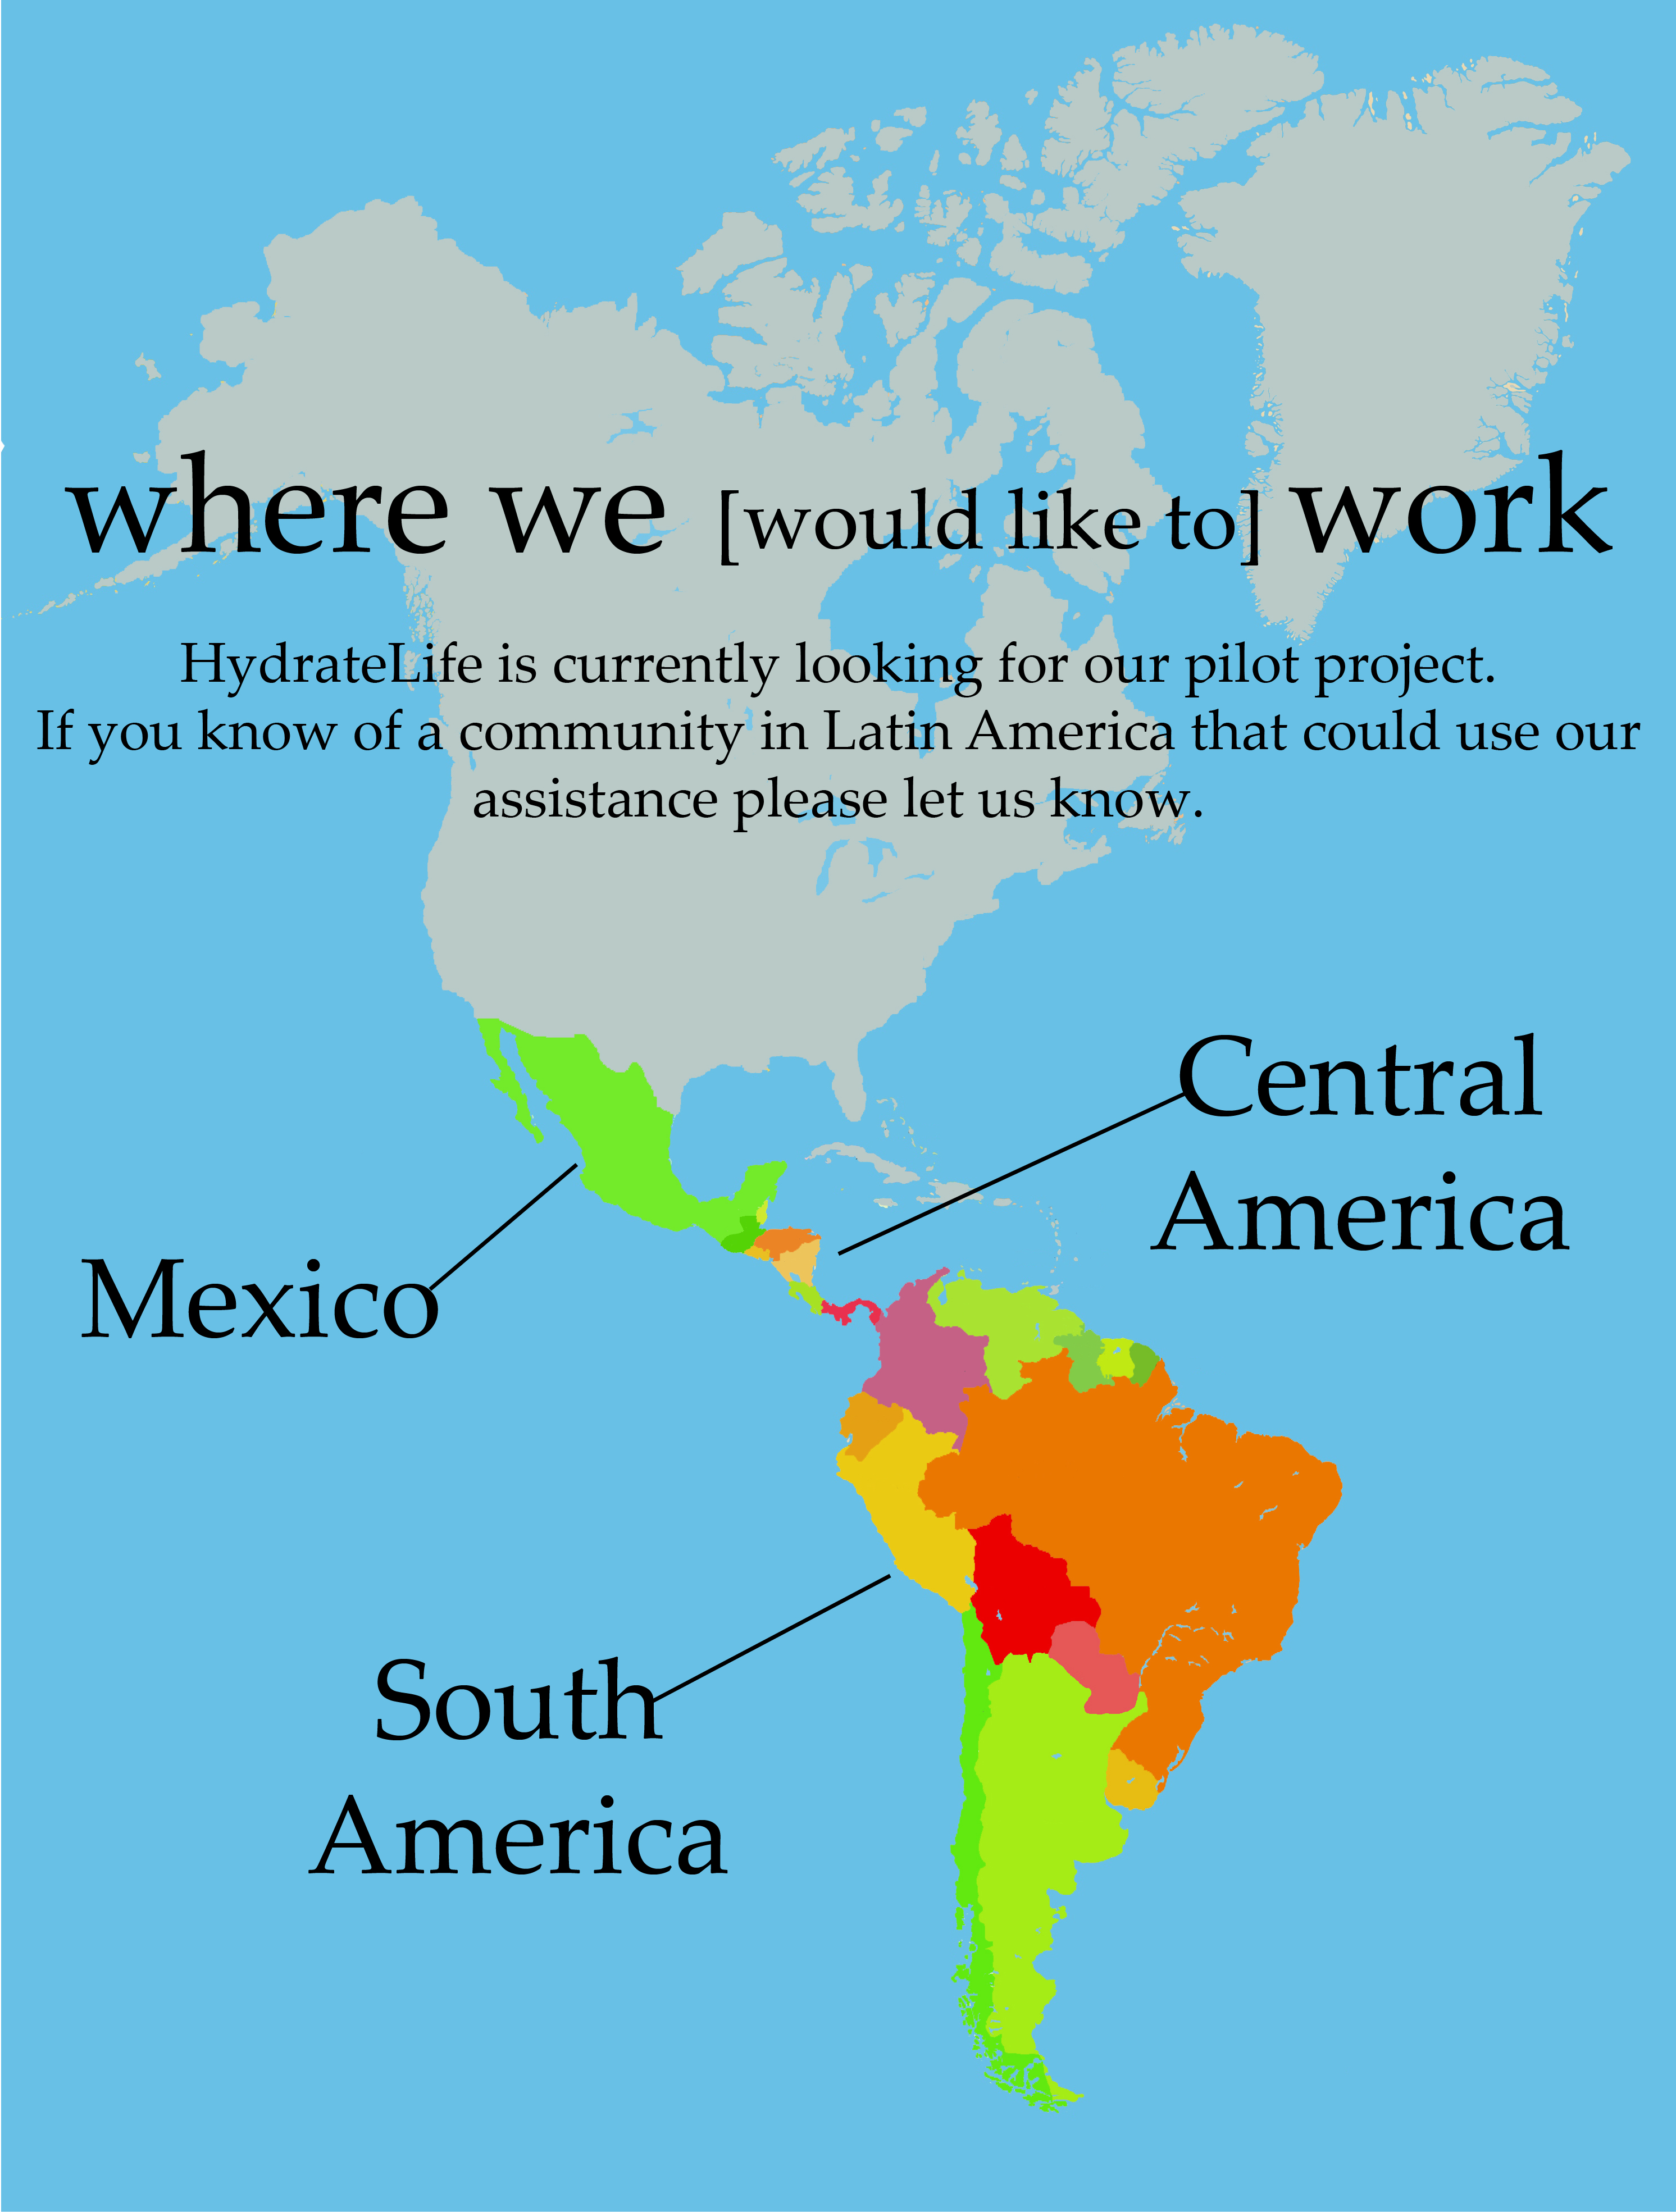 where-we-work-no-country-names-but-labeled3